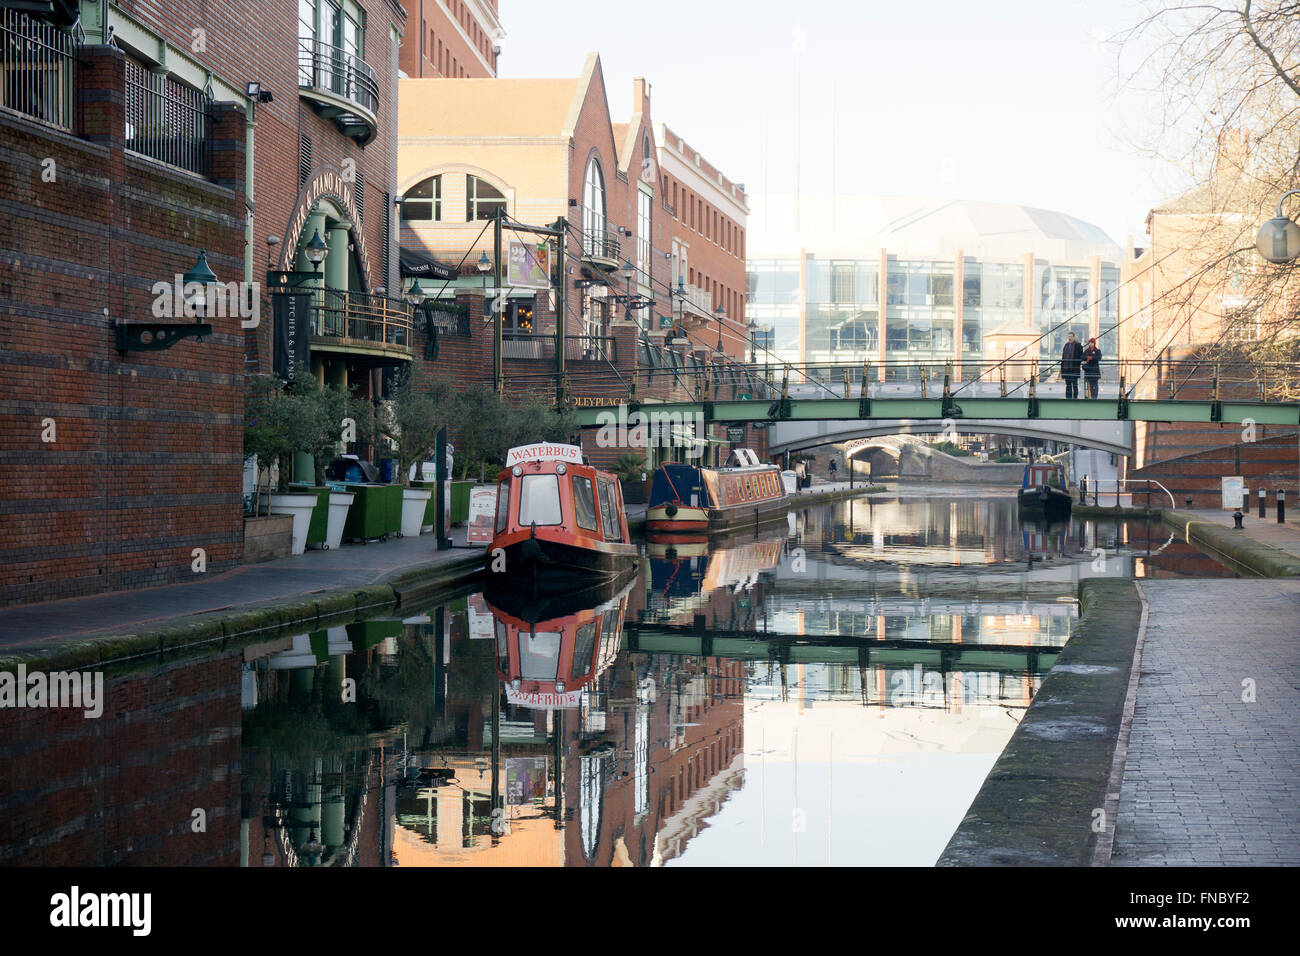 Narrowboats on the canal at Brindley Place Birmingham, England, UK - Stock Image